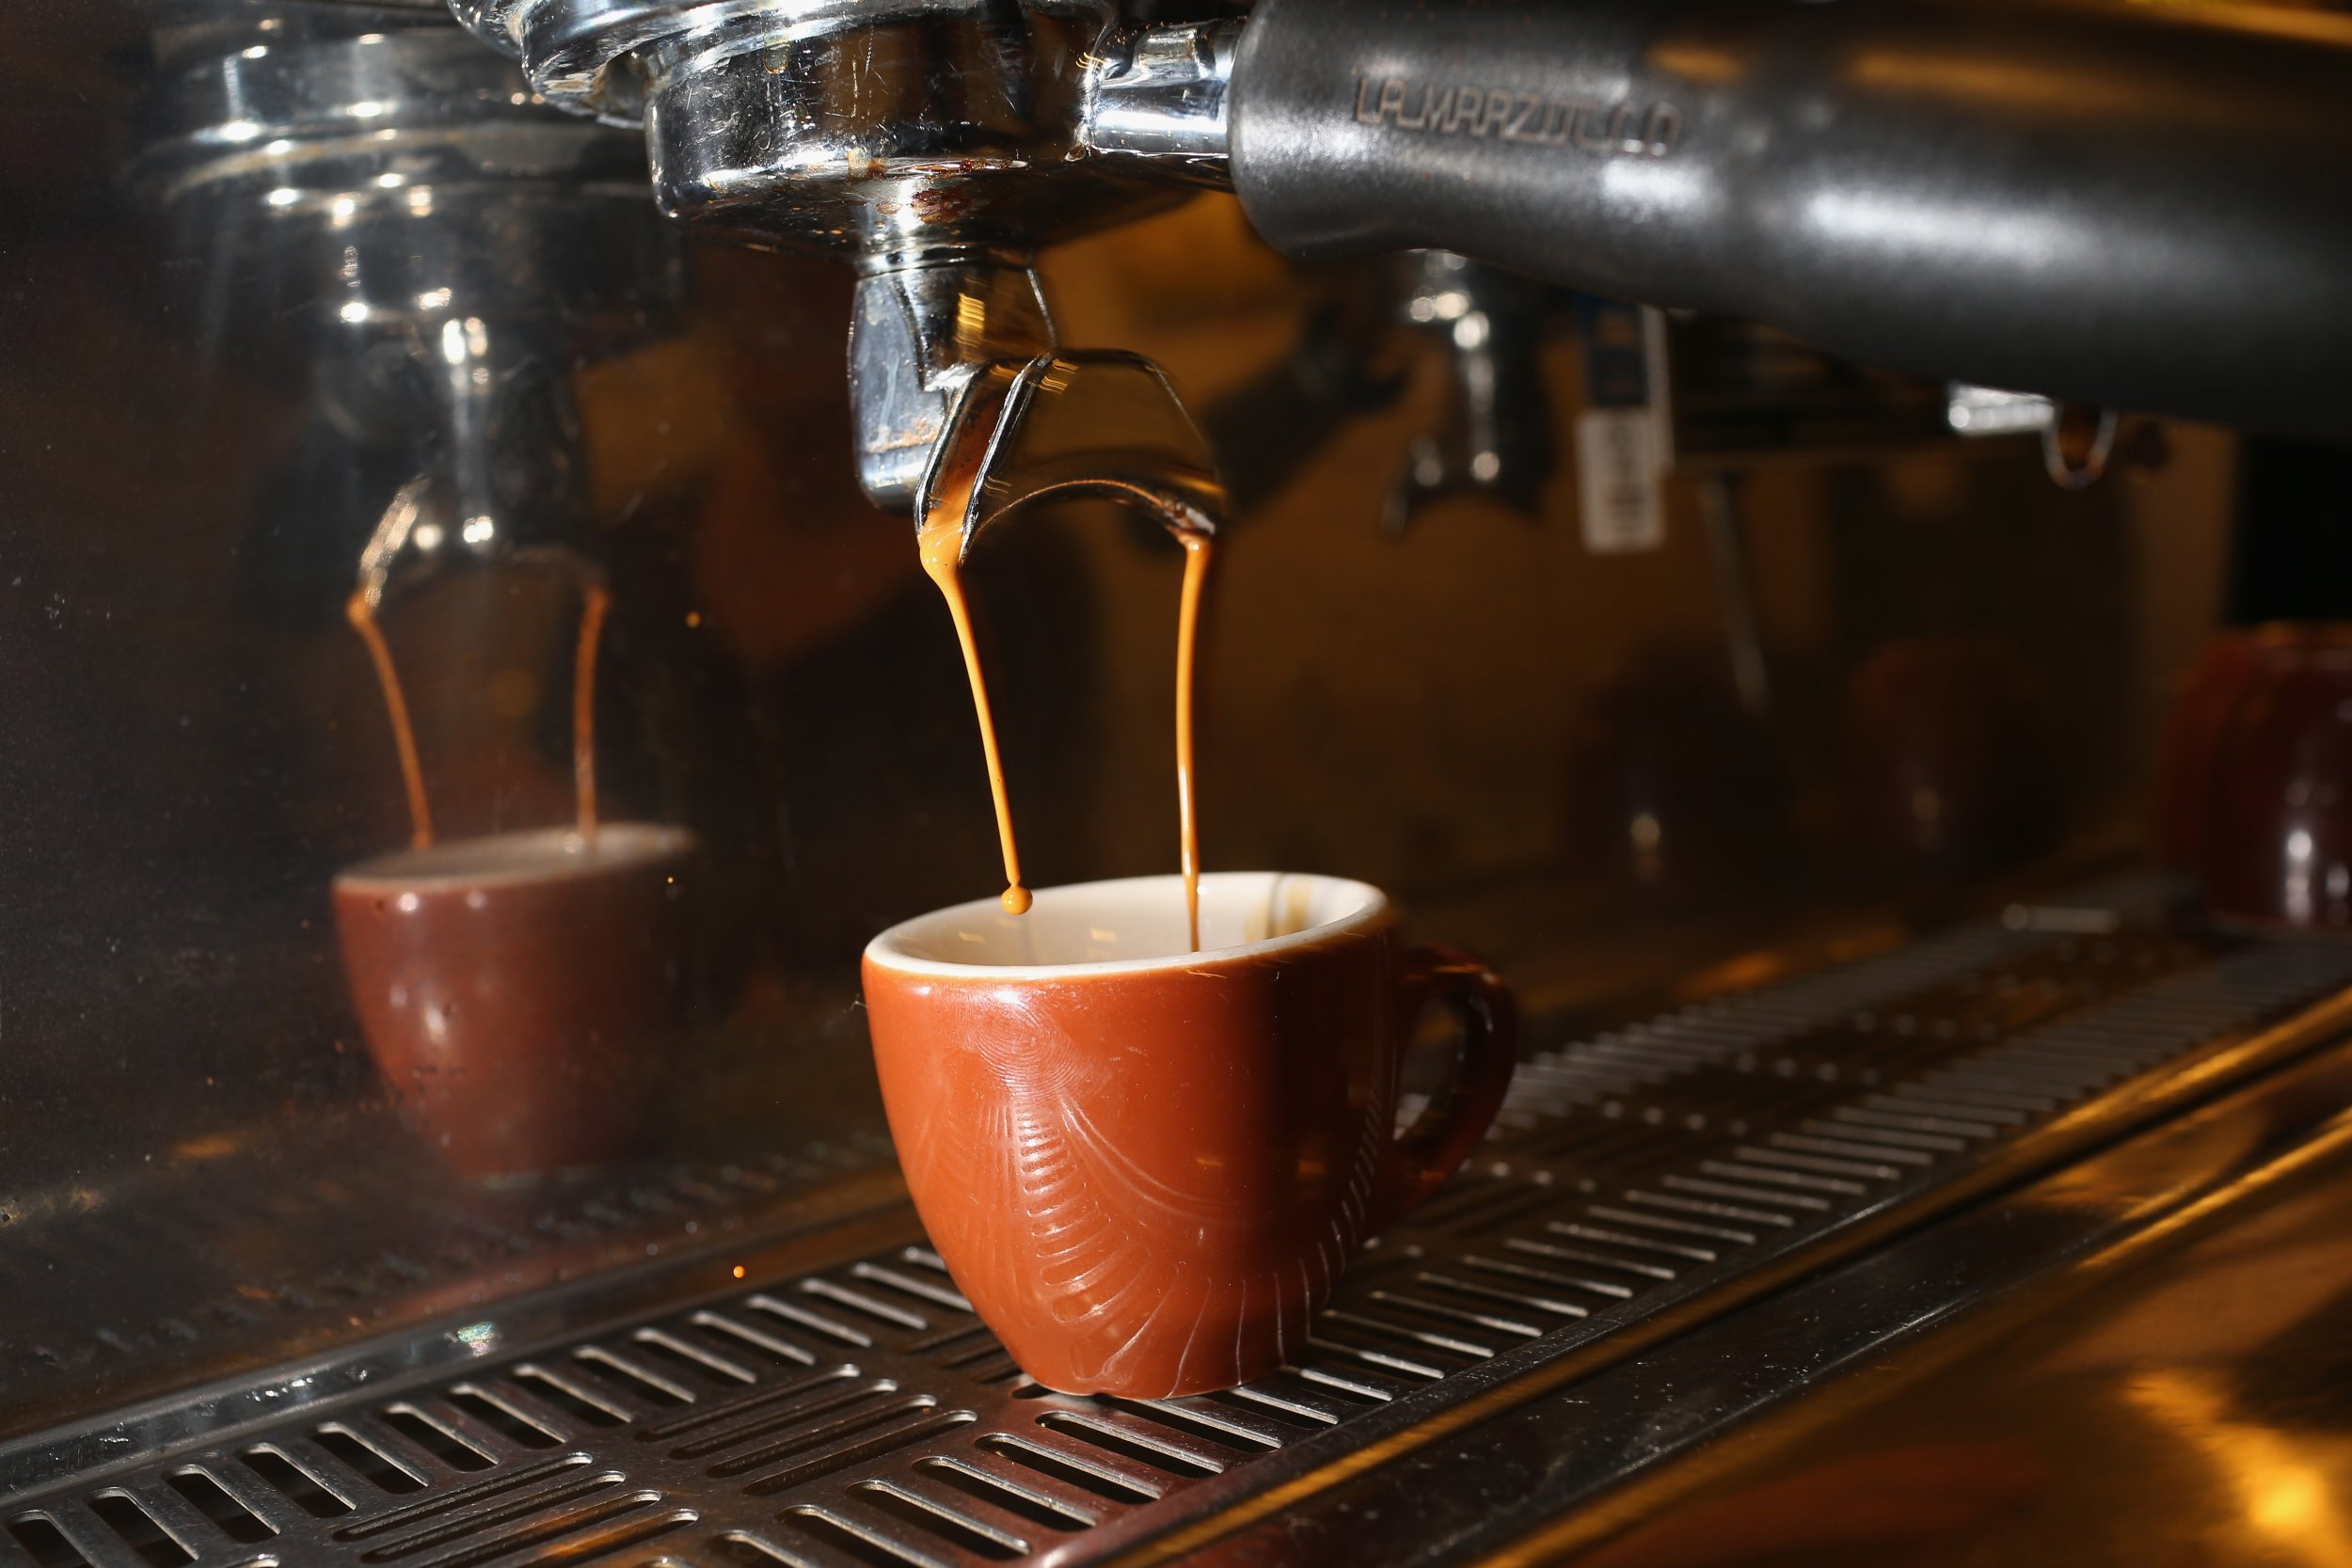 SAVING WITH $AM: National Coffee Day Deals